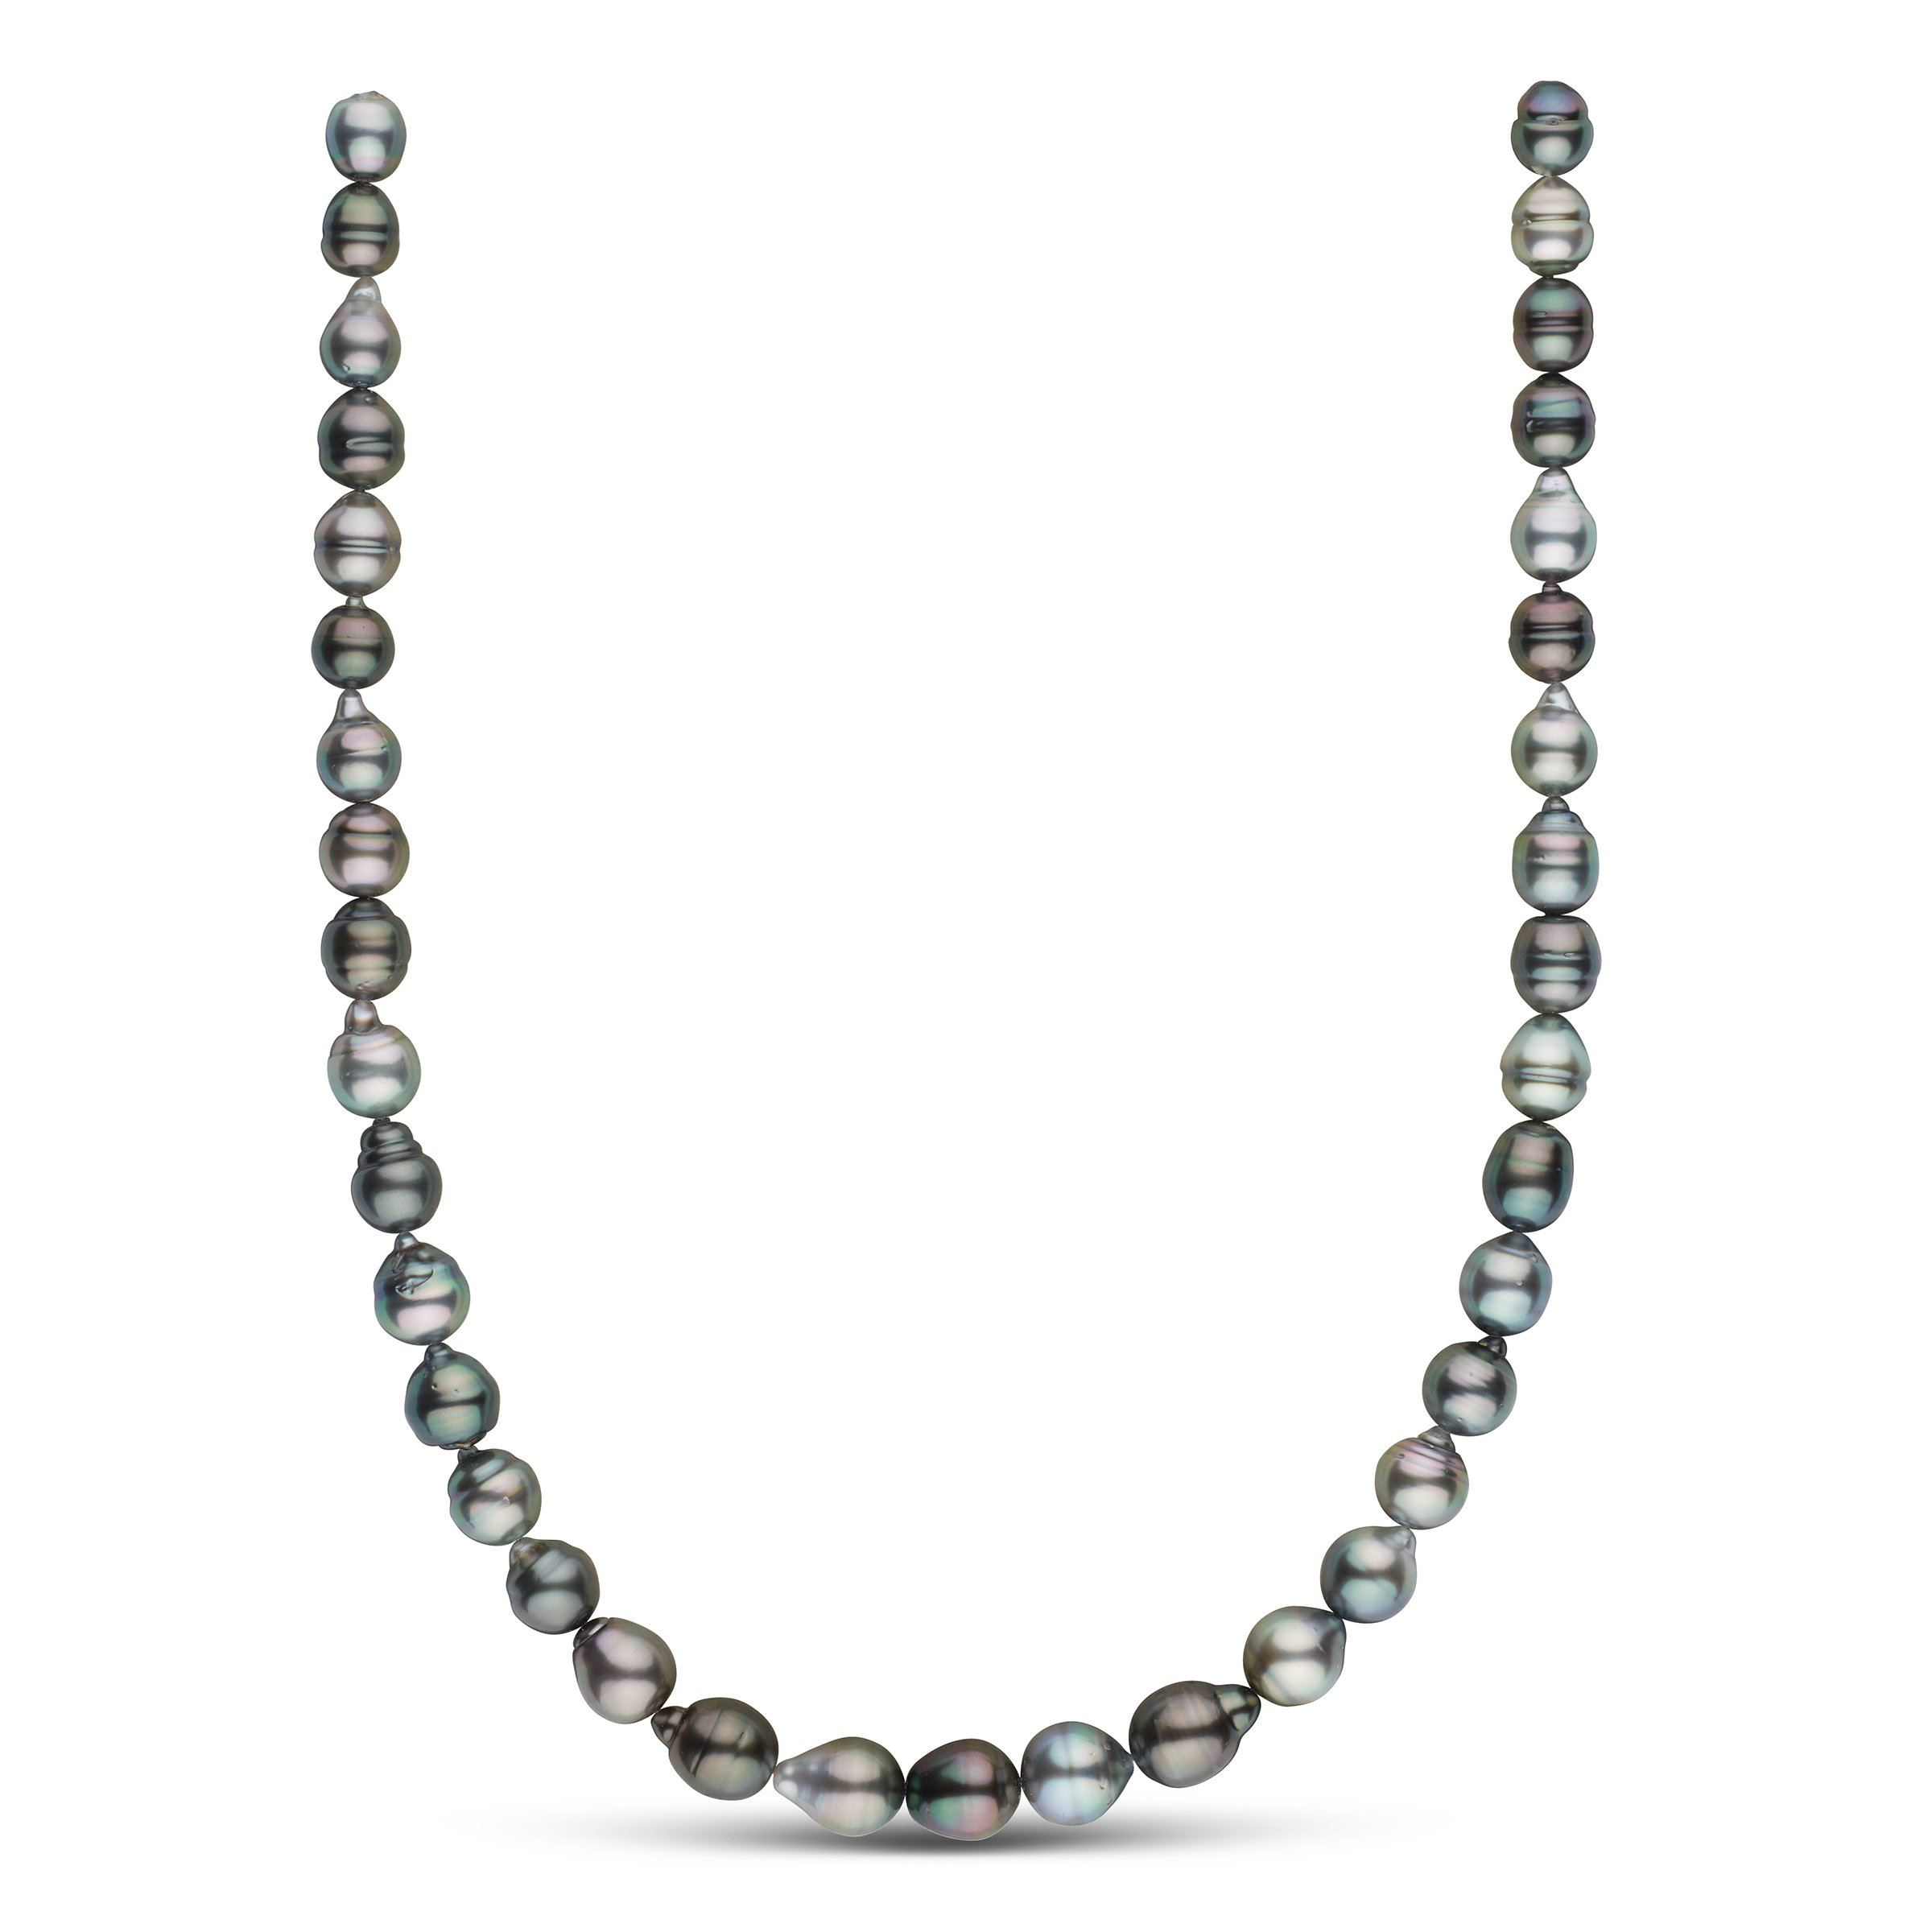 8.3-10.4 mm AAA Tahitian Baroque Pearl Necklace